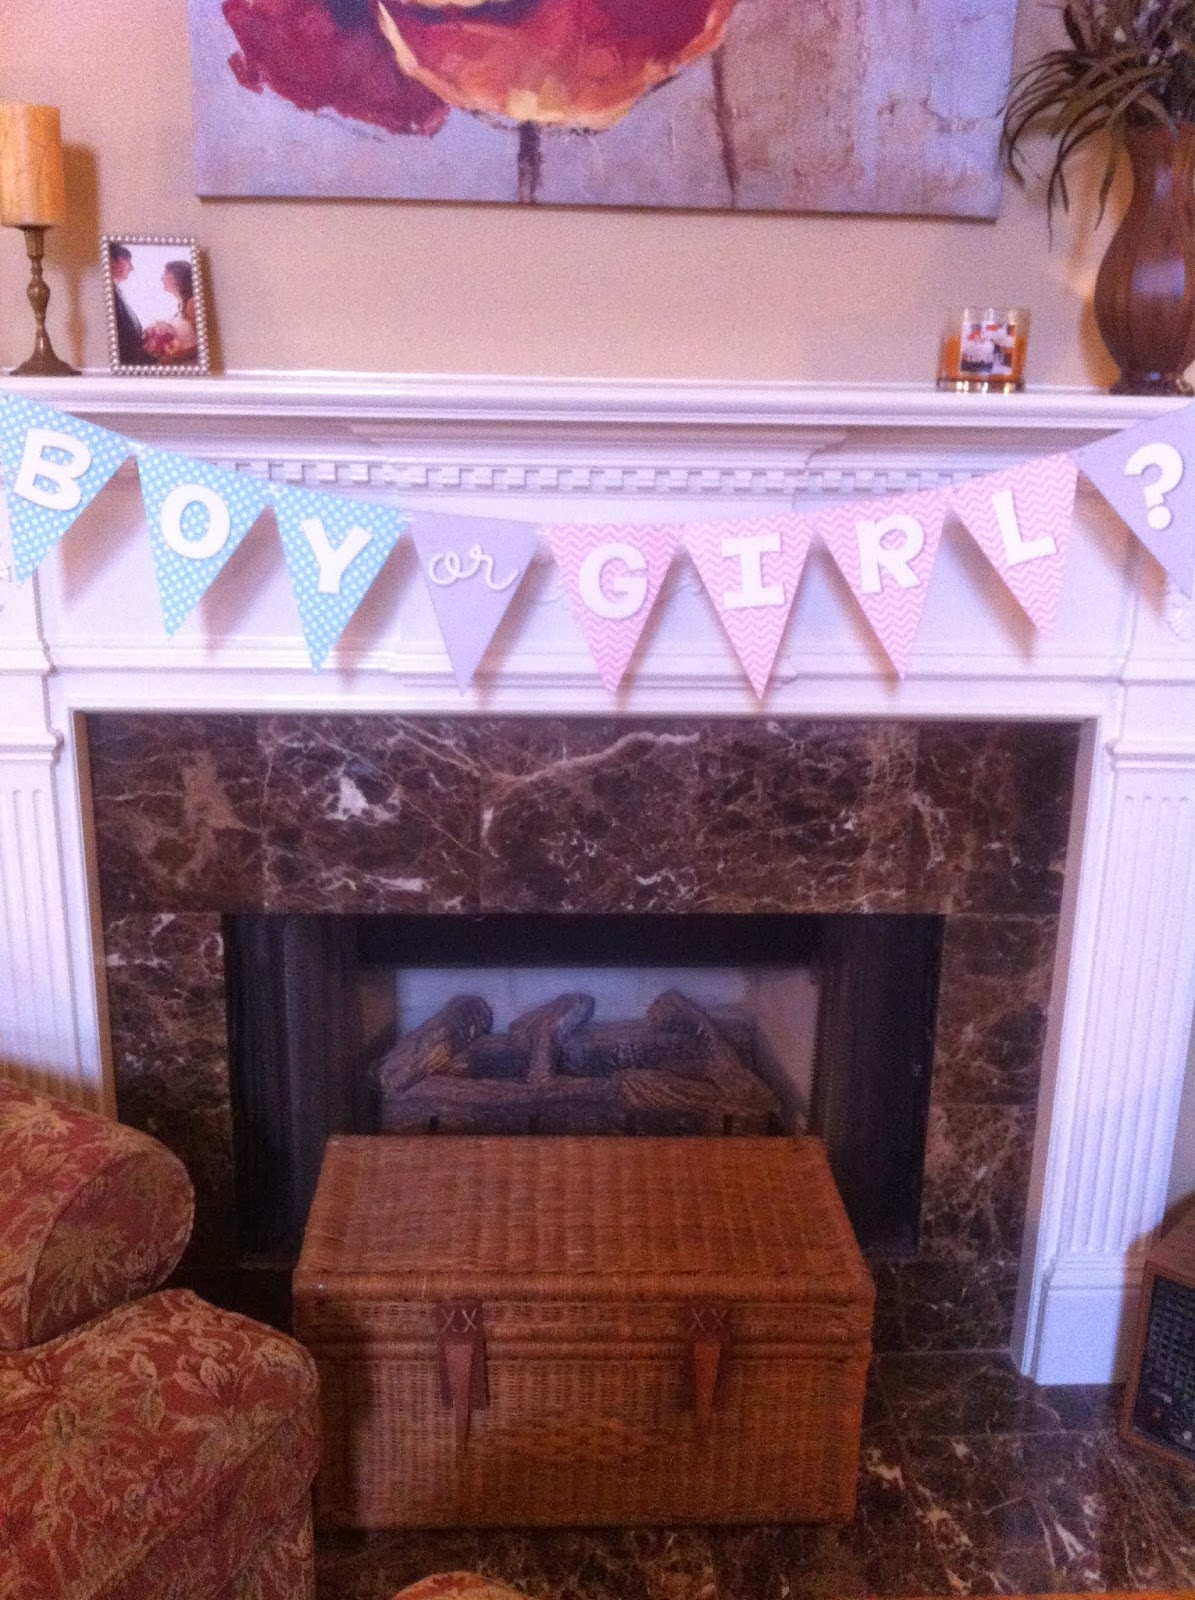 richly blessed gender reveal party amp ultrasound day